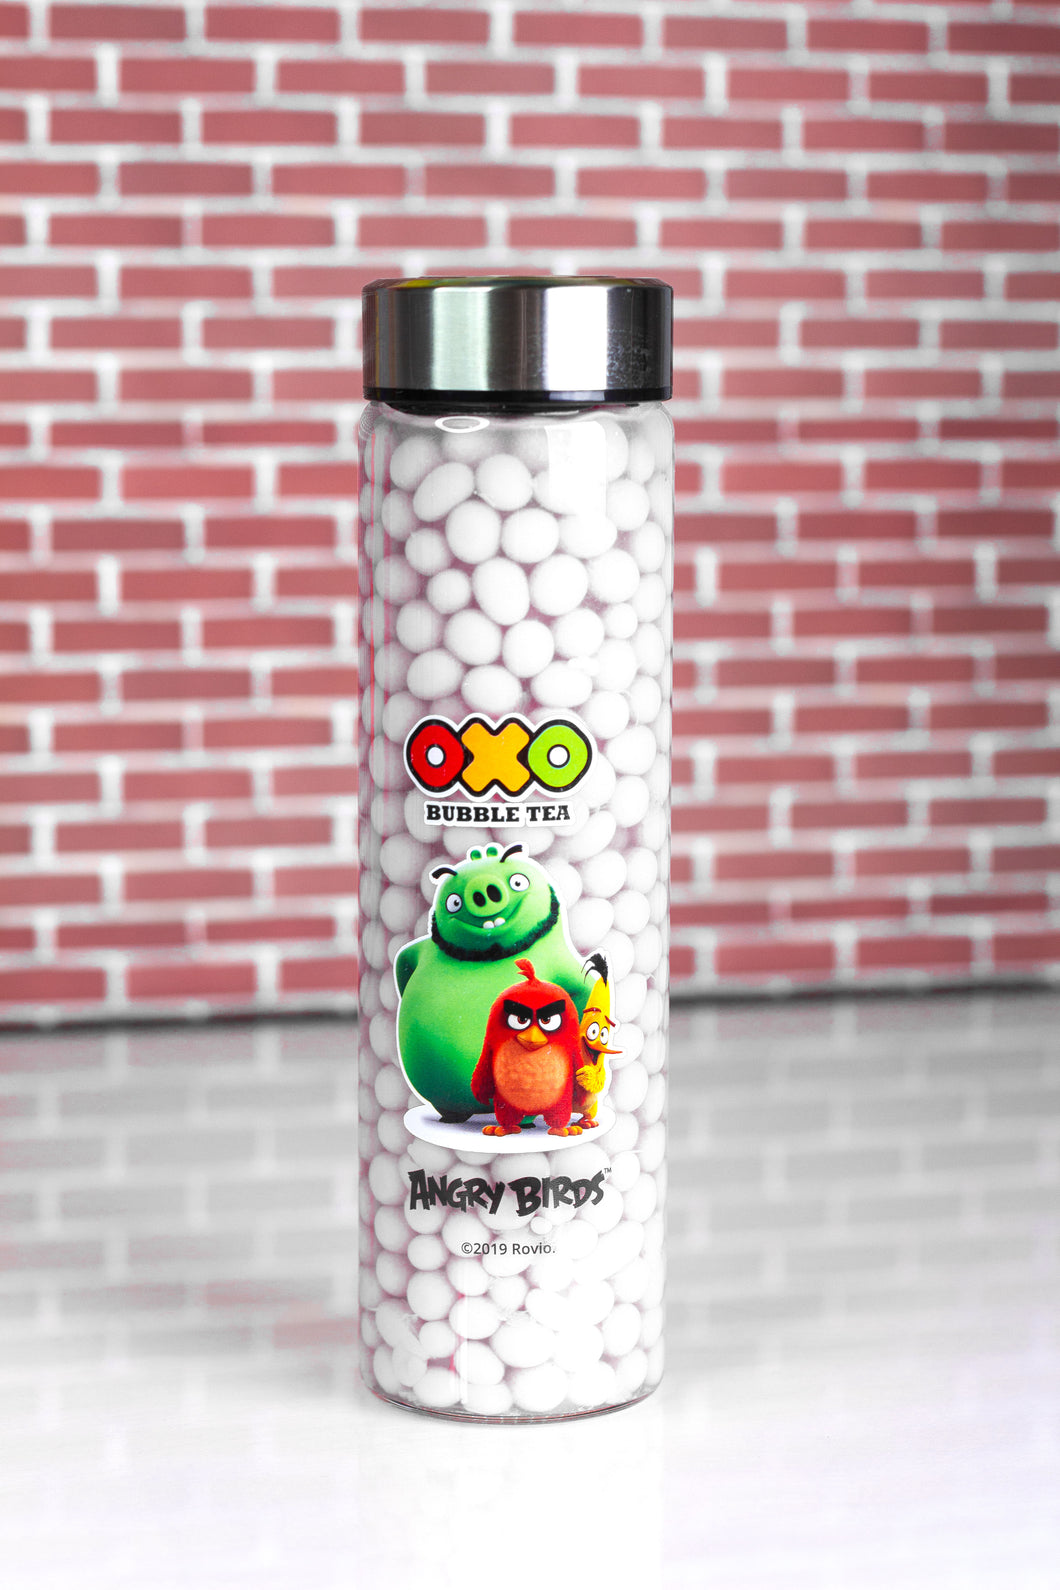 OXO Bubble Tea - Boba Bottle - Liči - www.oxoshop.cz